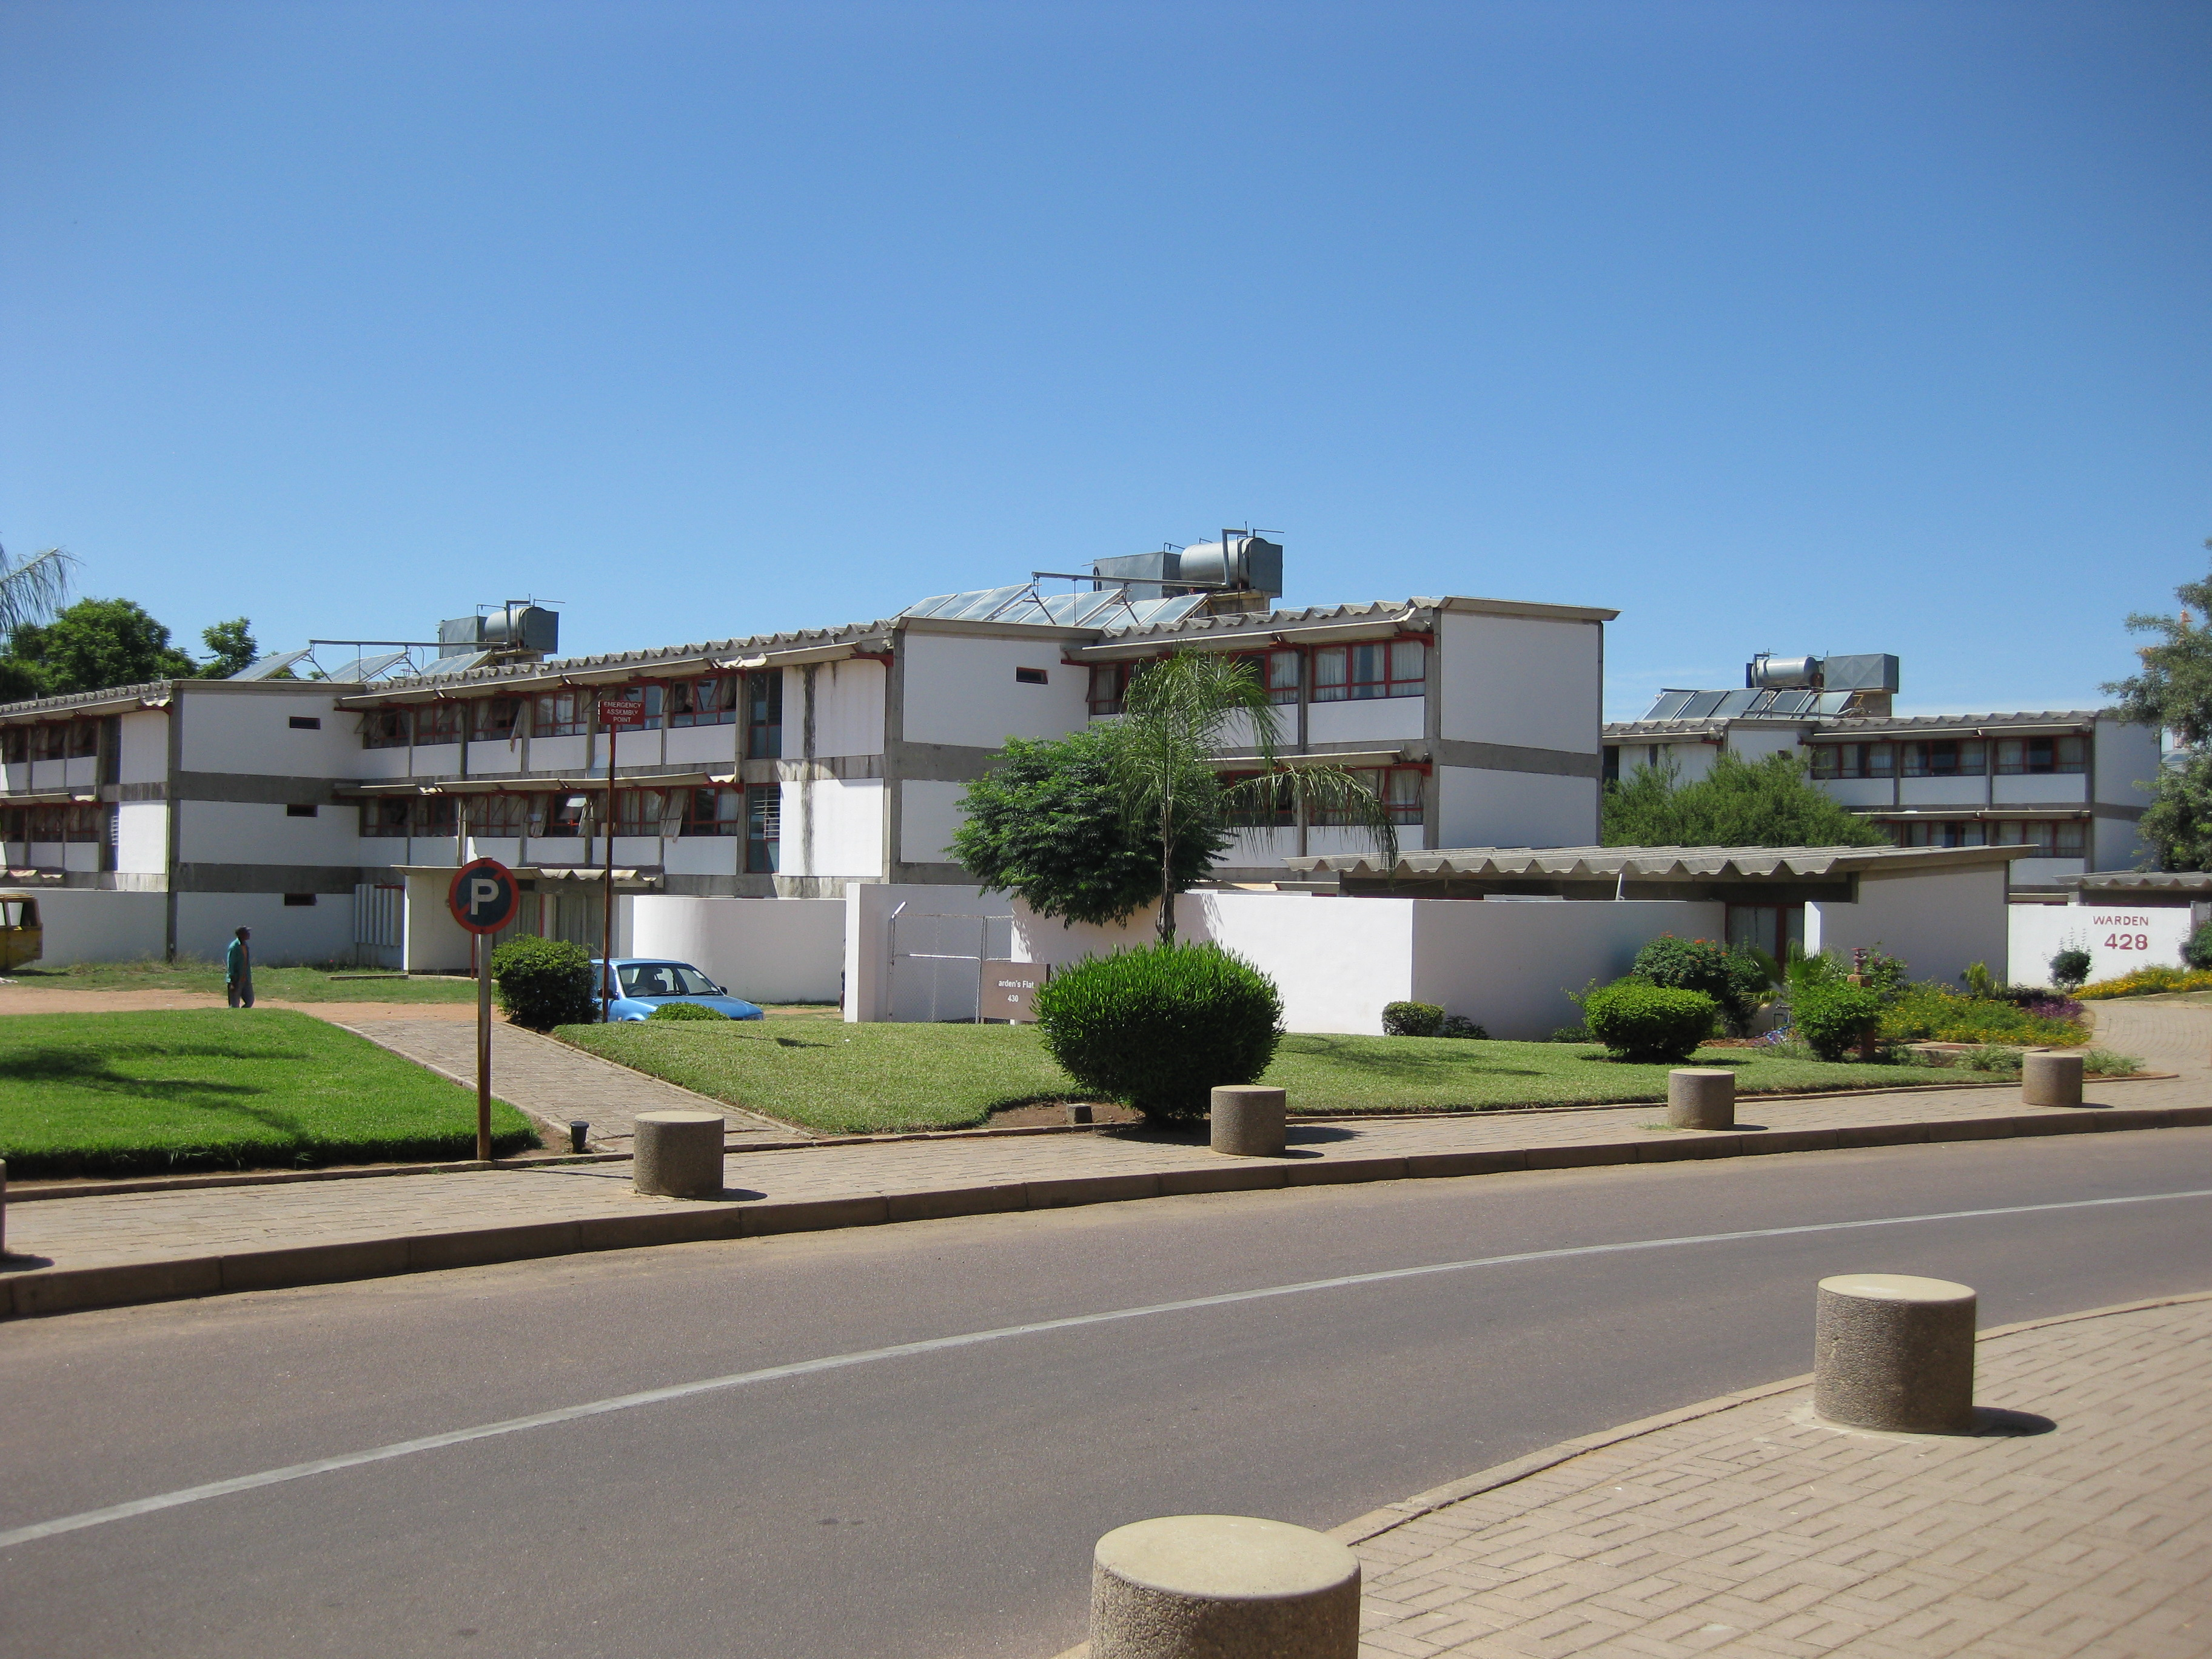 Mahalapye Botswana  city images : University of Botswana dorms Wikipedia, the free ...